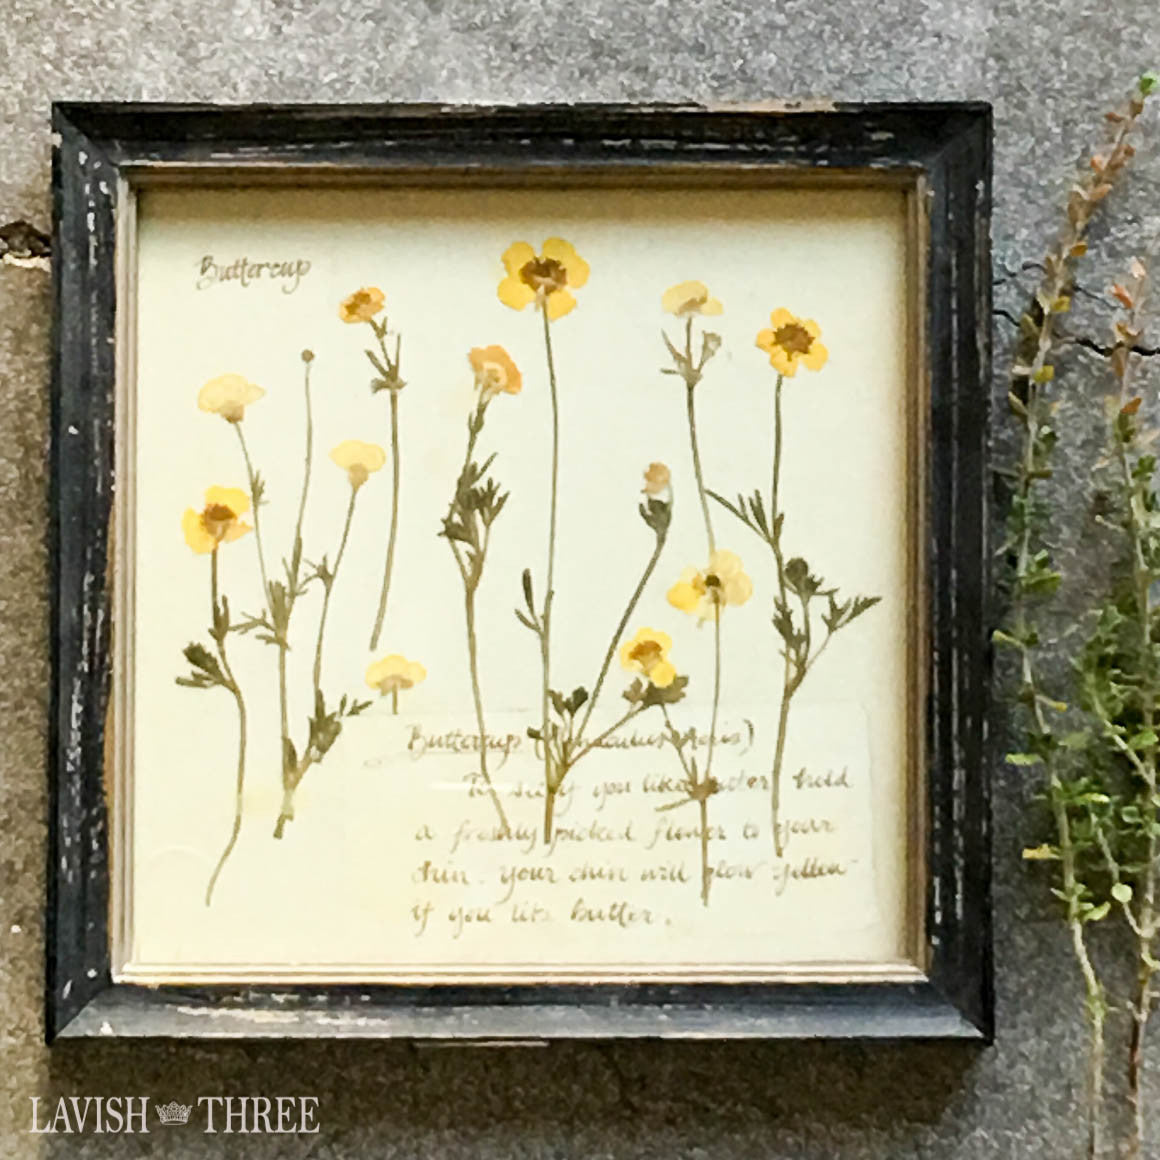 Sunny buttercup framed vintage botanical floral print wall art decor